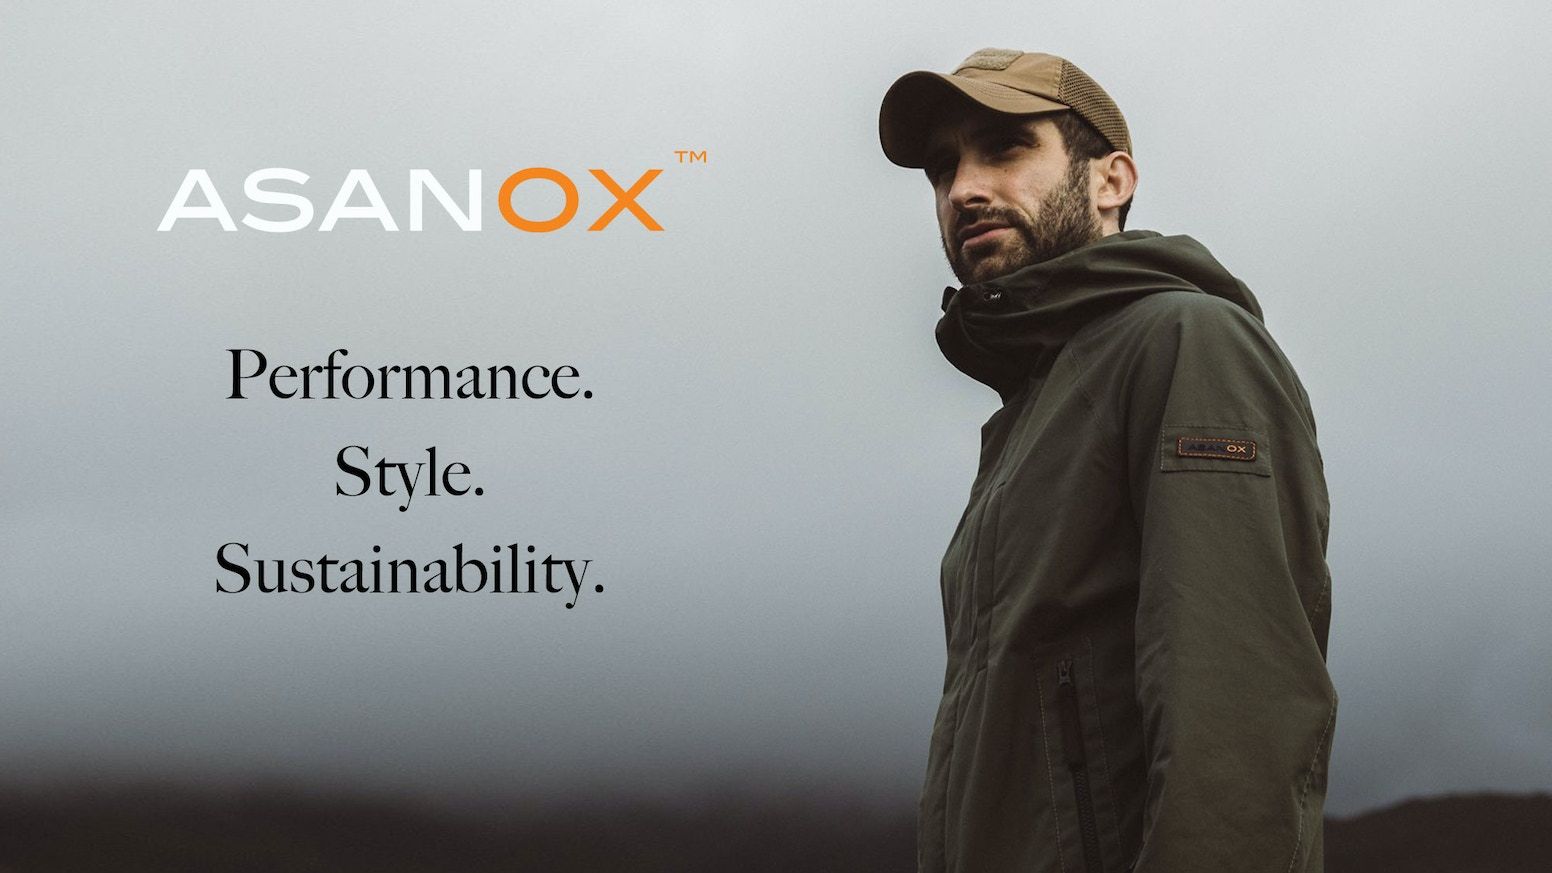 High-end designer & ex Commando team up to produce the ultimate sustainable men's jackets for urban & outdoor lifestyles